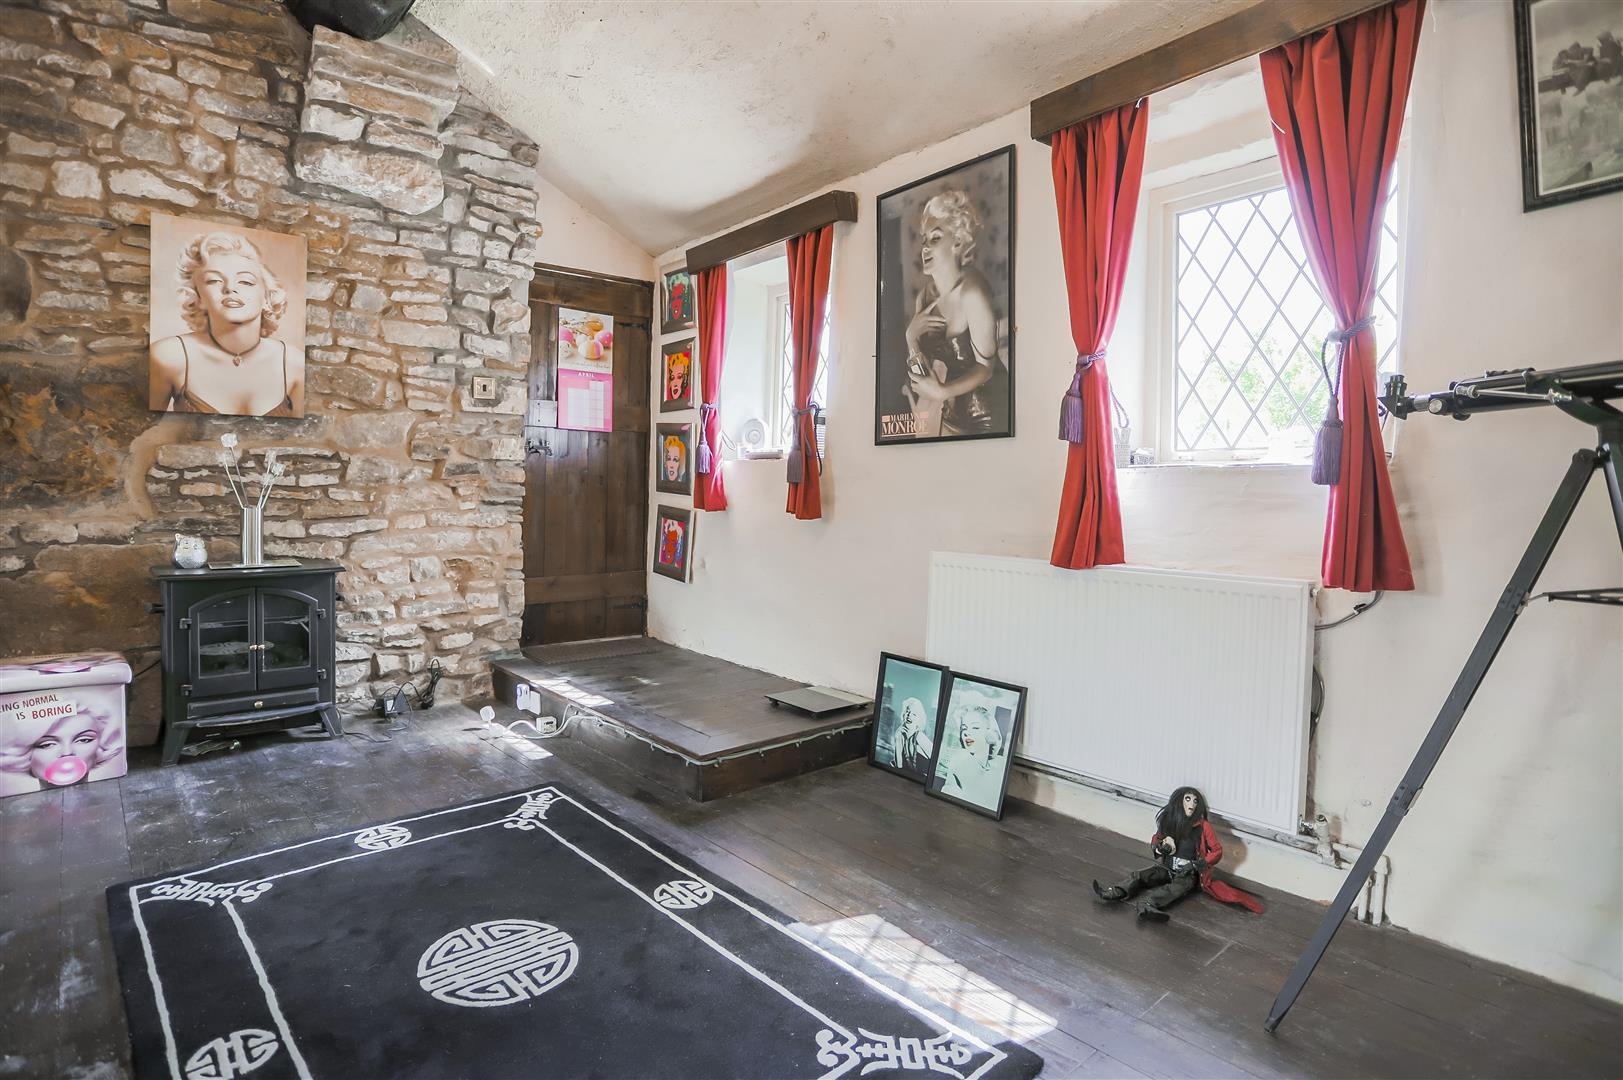 3 Bedroom House For Sale - Image 41